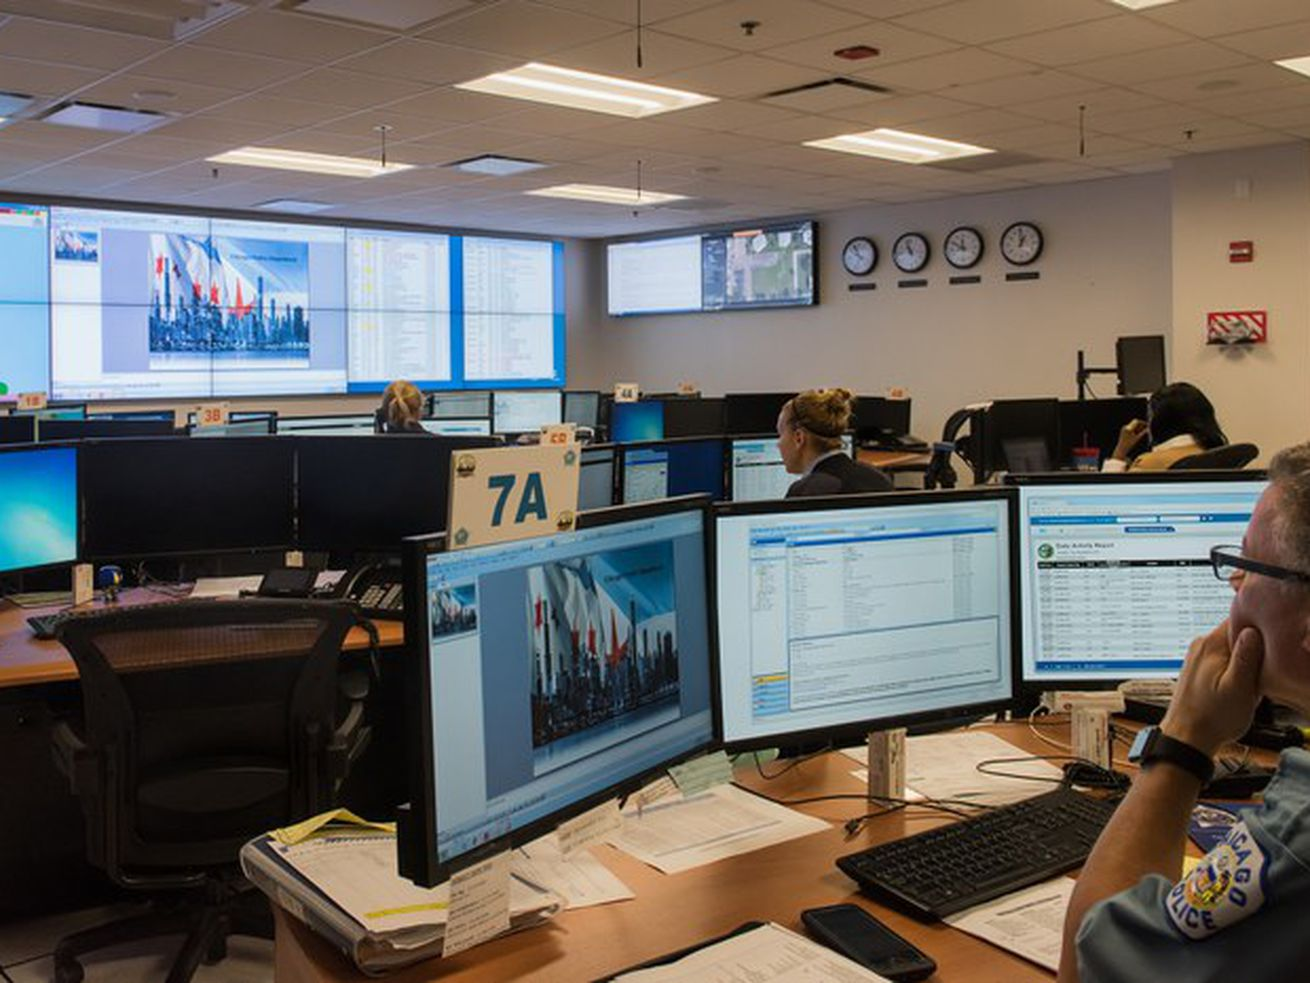 Chicago police officials working in the department's Crime Prevention and Information Center when detectives were using Clearview AI facial recognition technology.